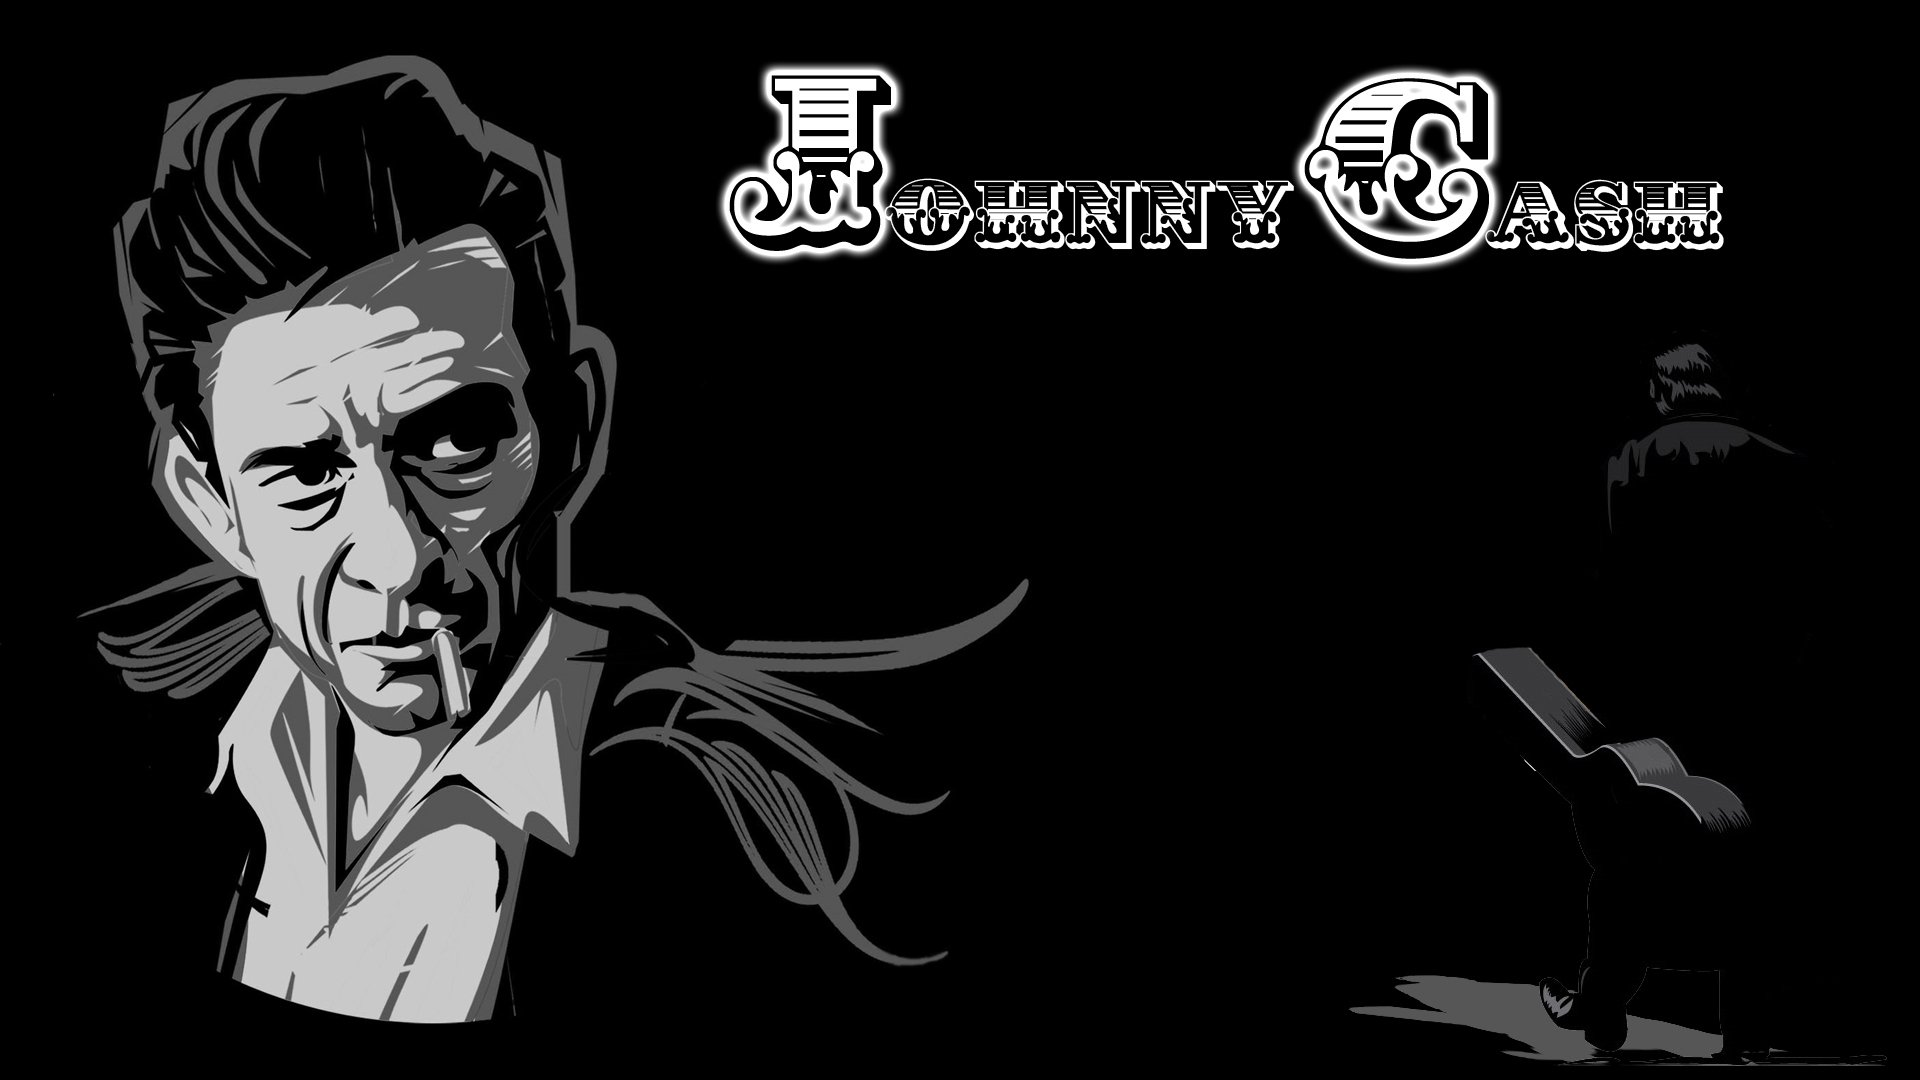 Johnny Cash images R Johnny Cash sexy k wallpaper Free  Download Johnny Cash sexy k 1920x1080